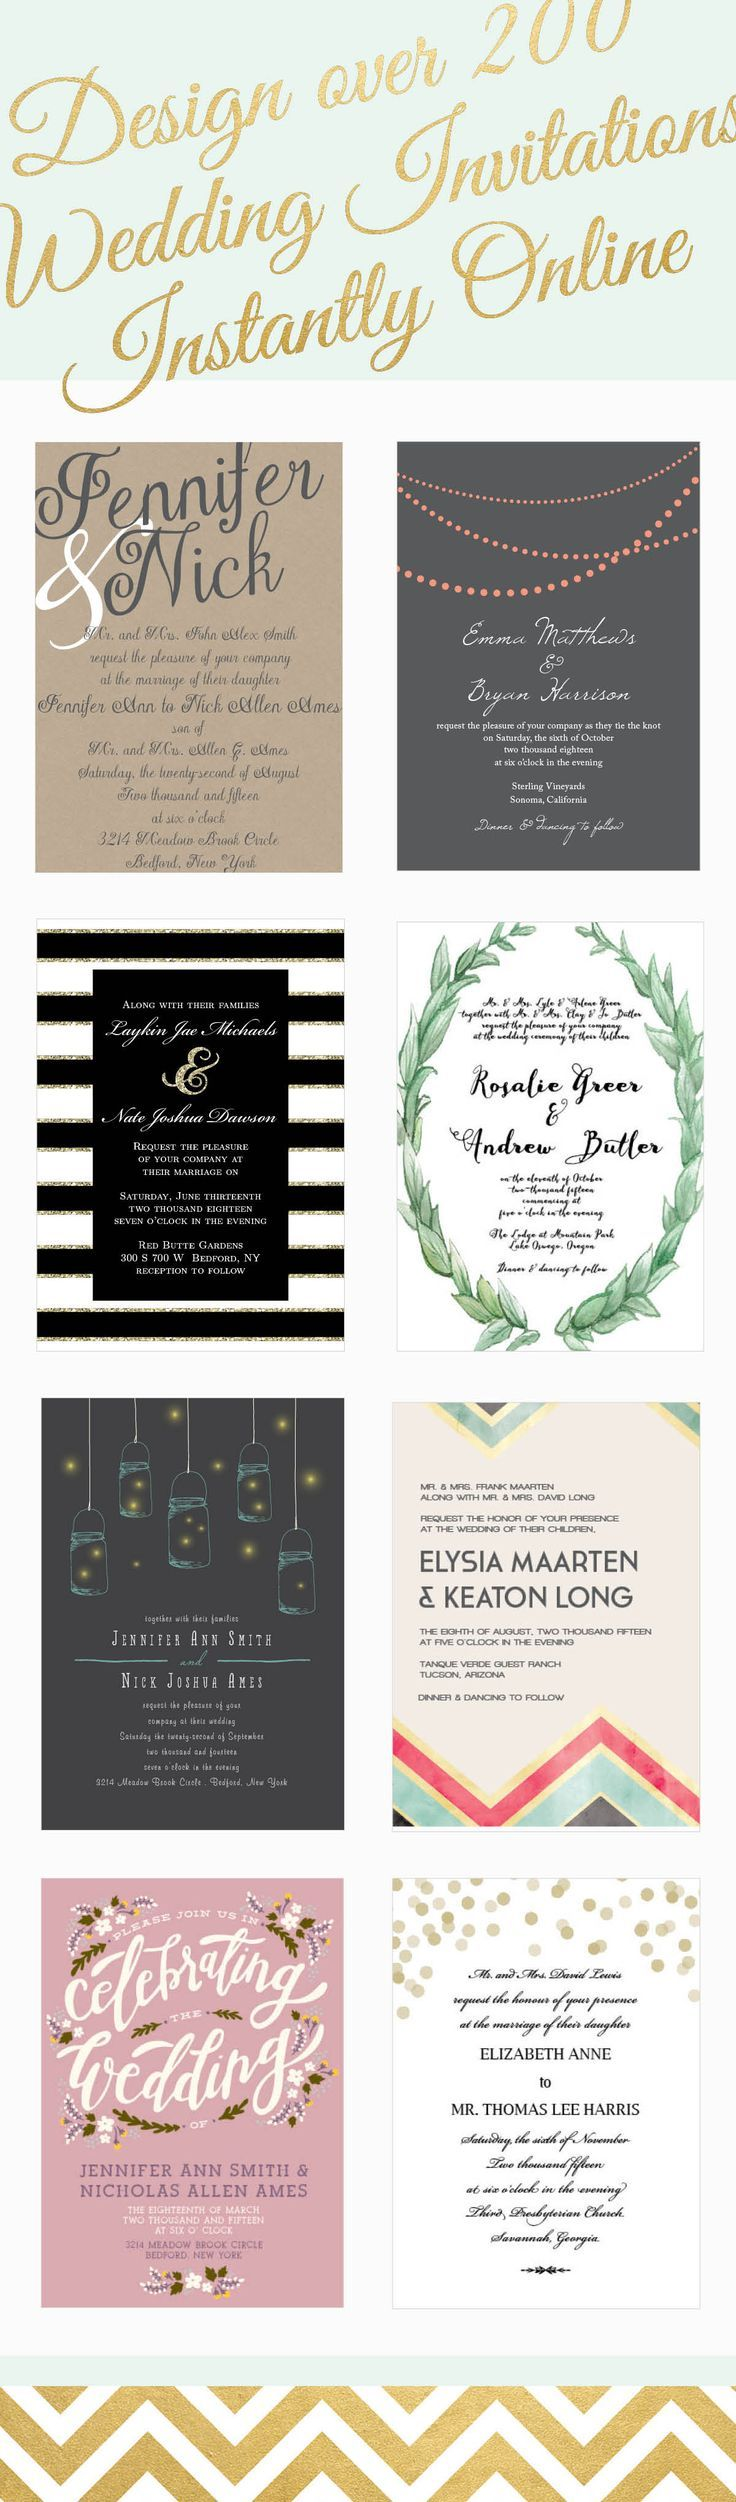 Over 200 wedding invitations that can be instantly designed online ...